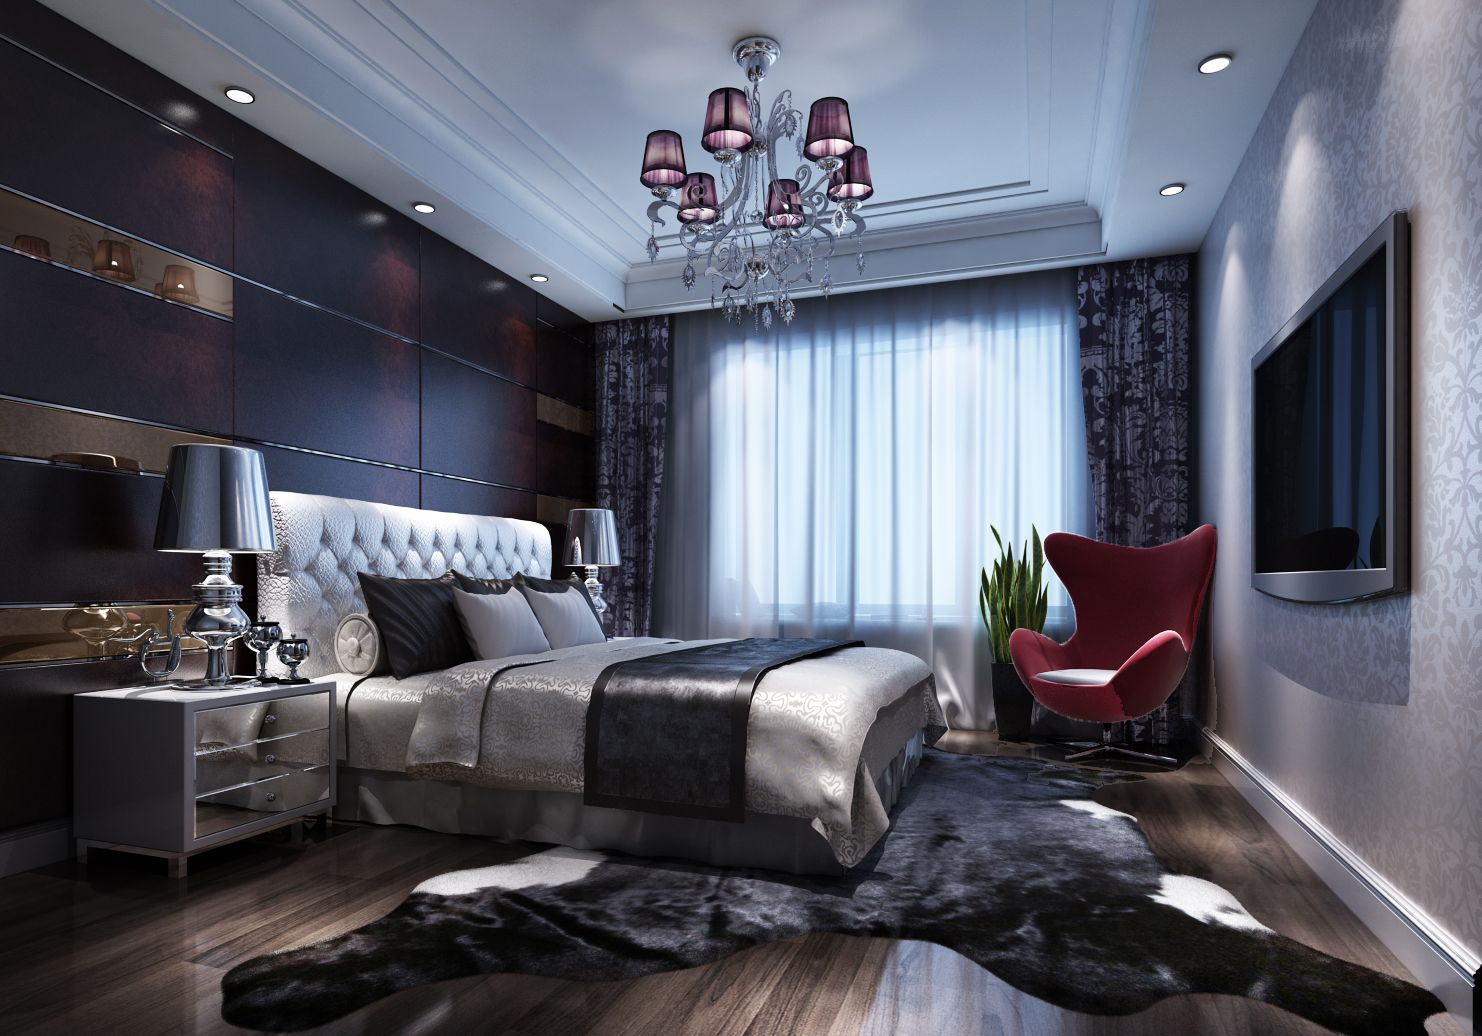 Chinese luxury bedroom decoration renderings | Interior ...